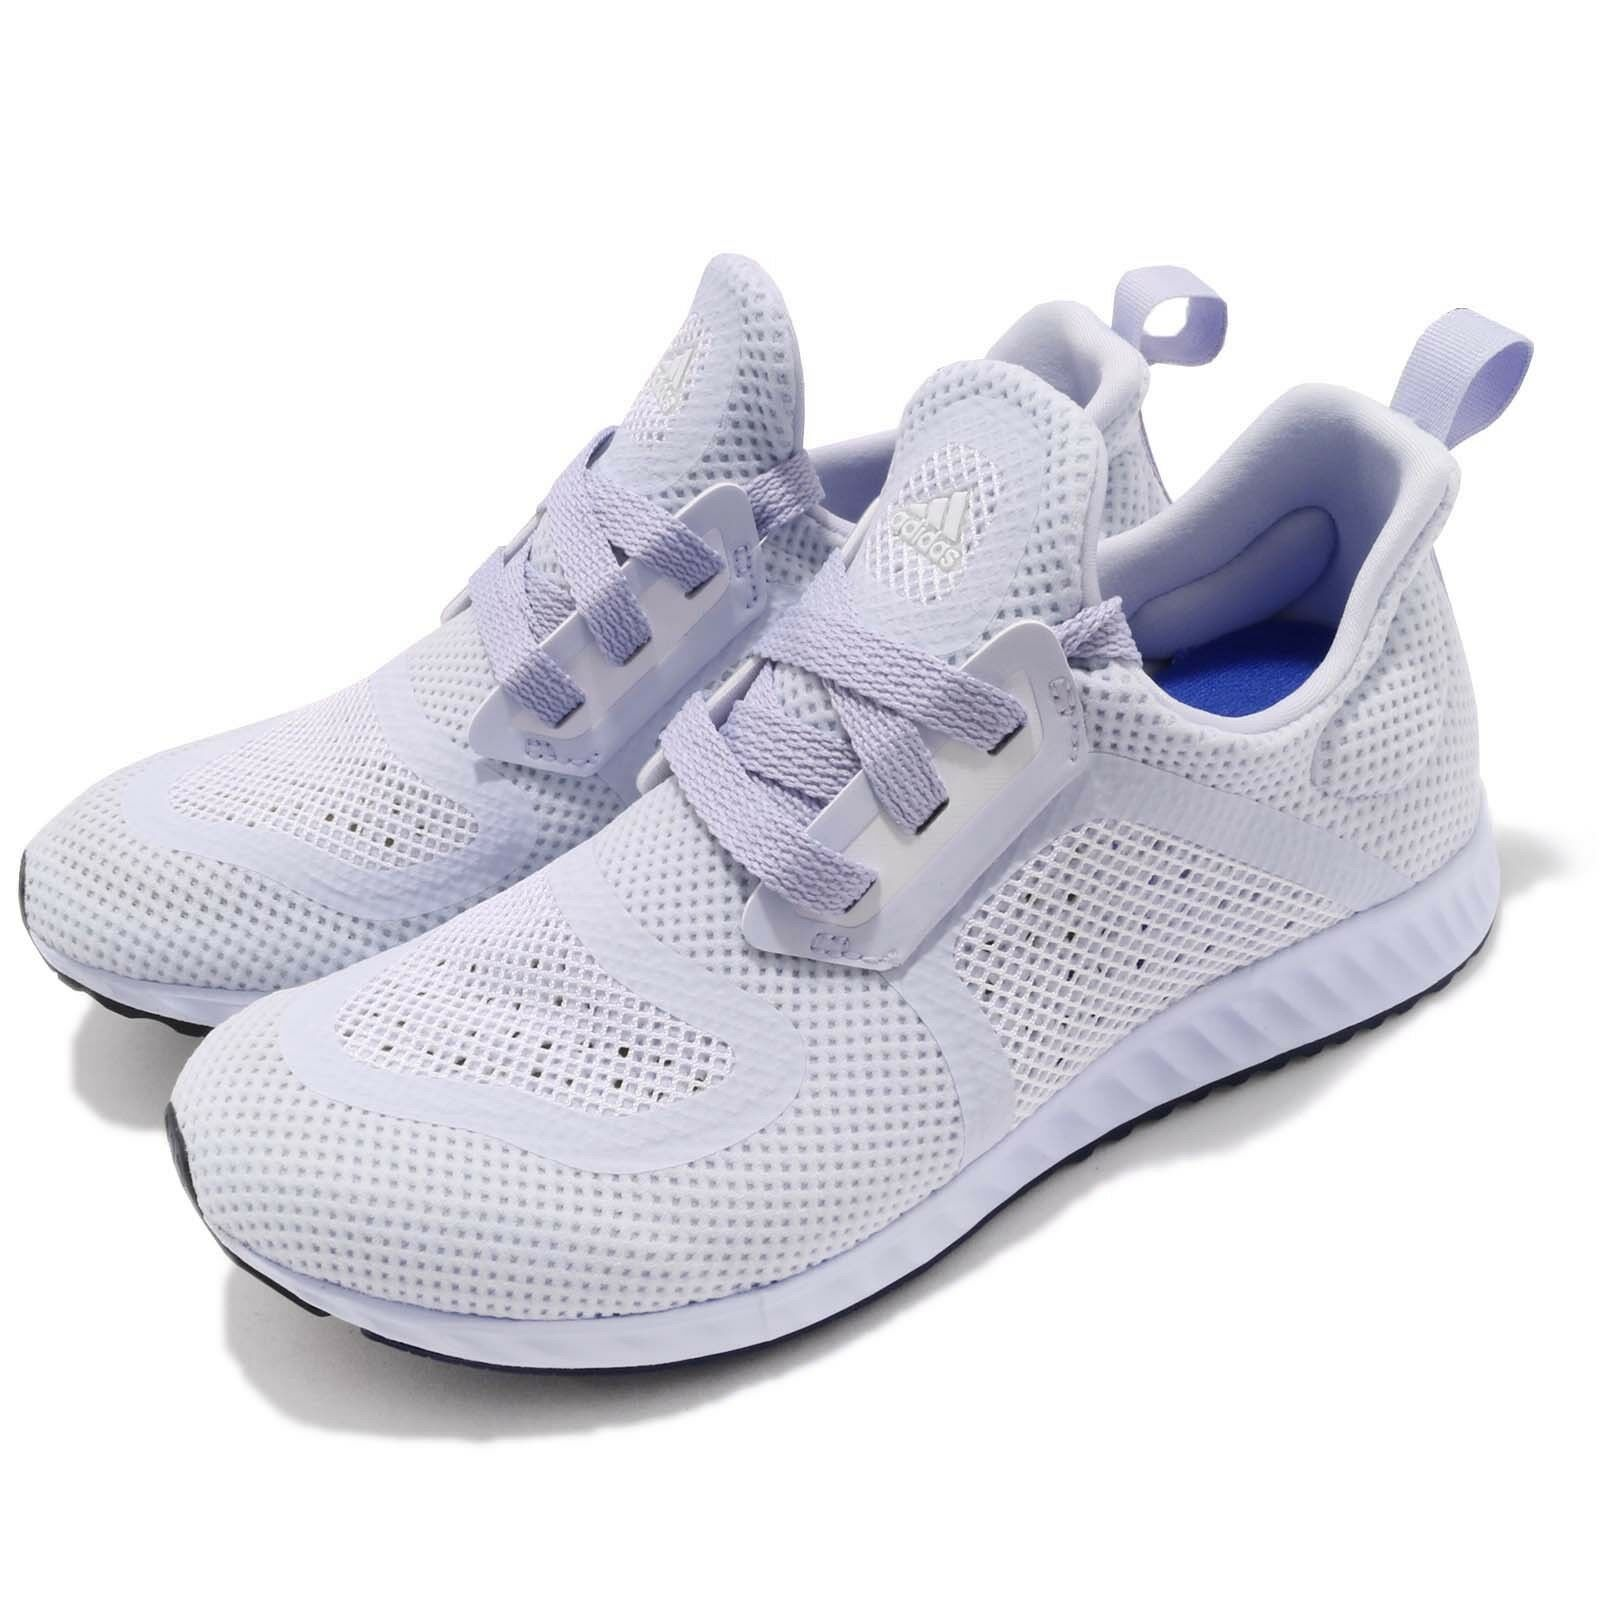 Adidas Edge Lux Clima Purple White Women Running shoes Sneakers Trainers DB0184